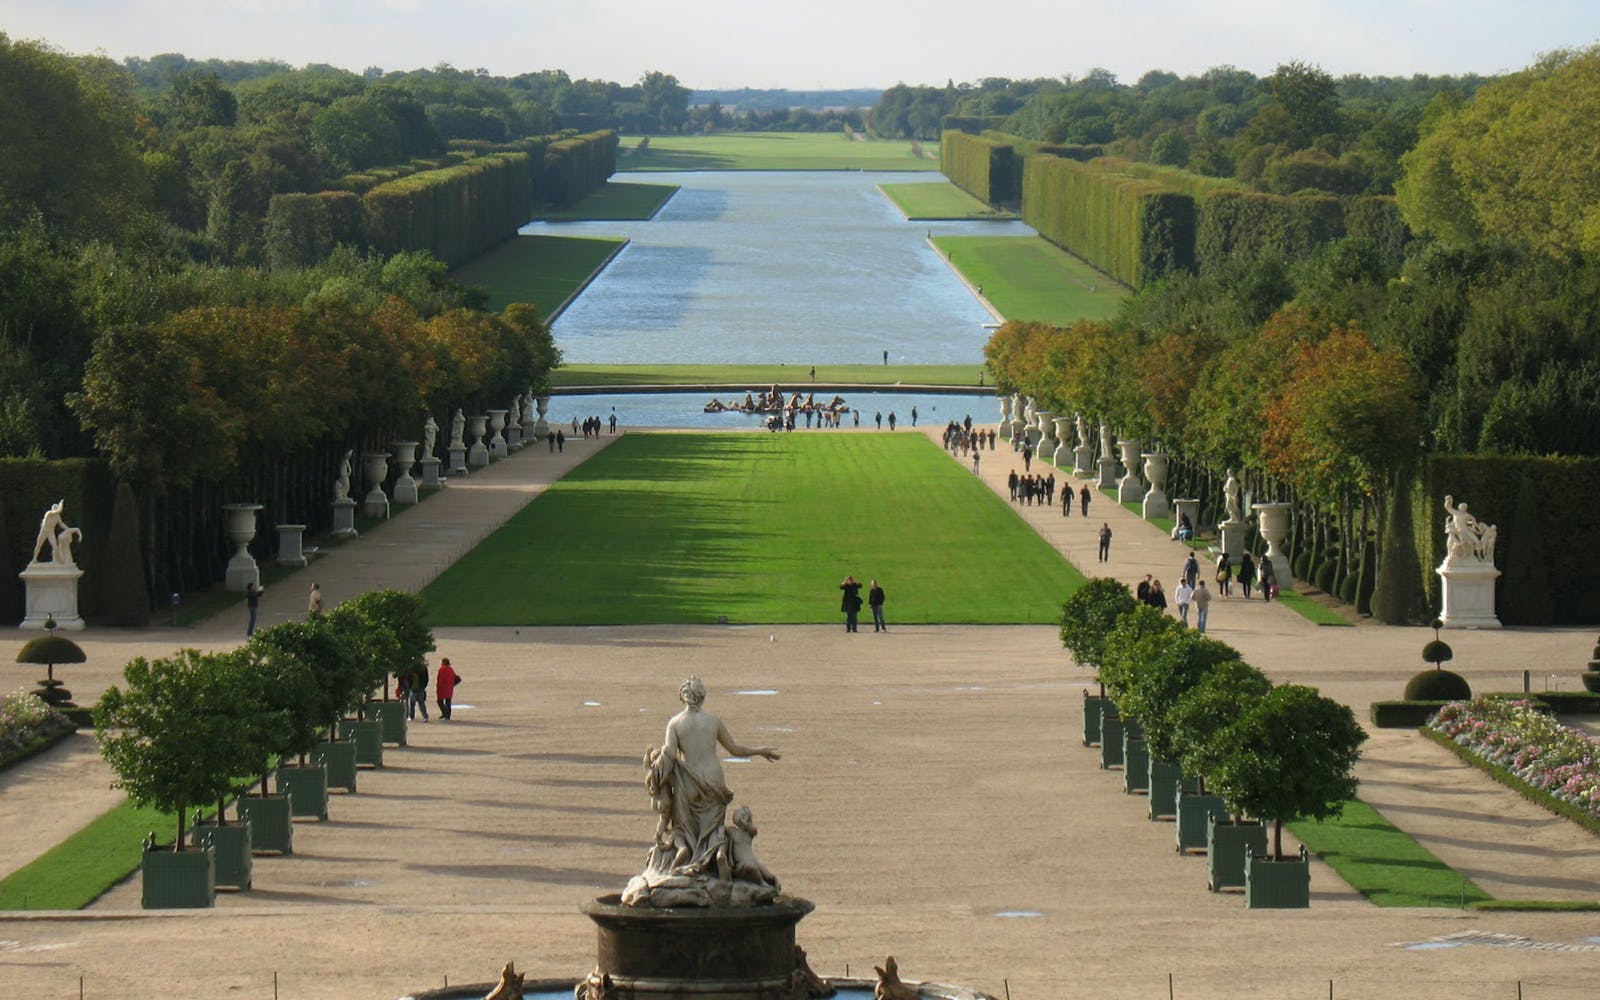 versailles all access passport entry with fountain shows and musical gardens-8